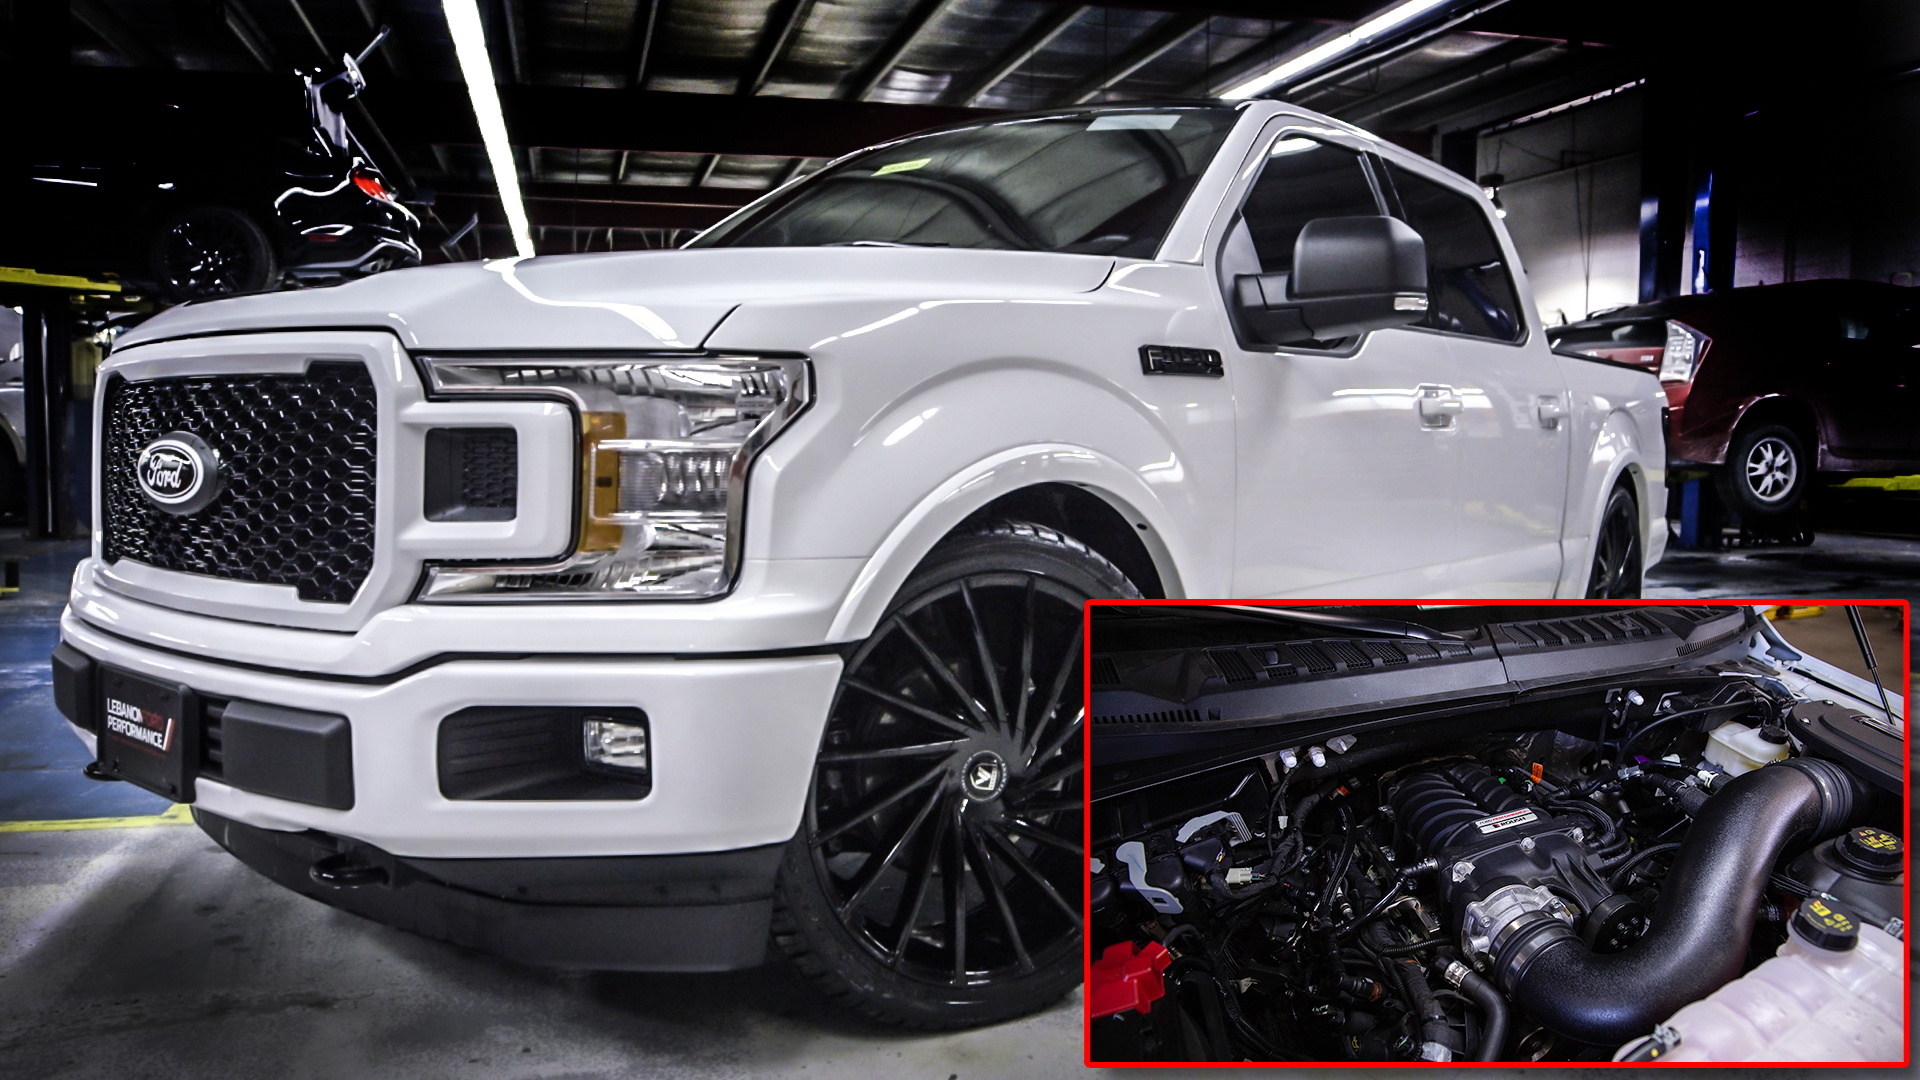 Lebanon Ford Performance F-150 with 725 hp